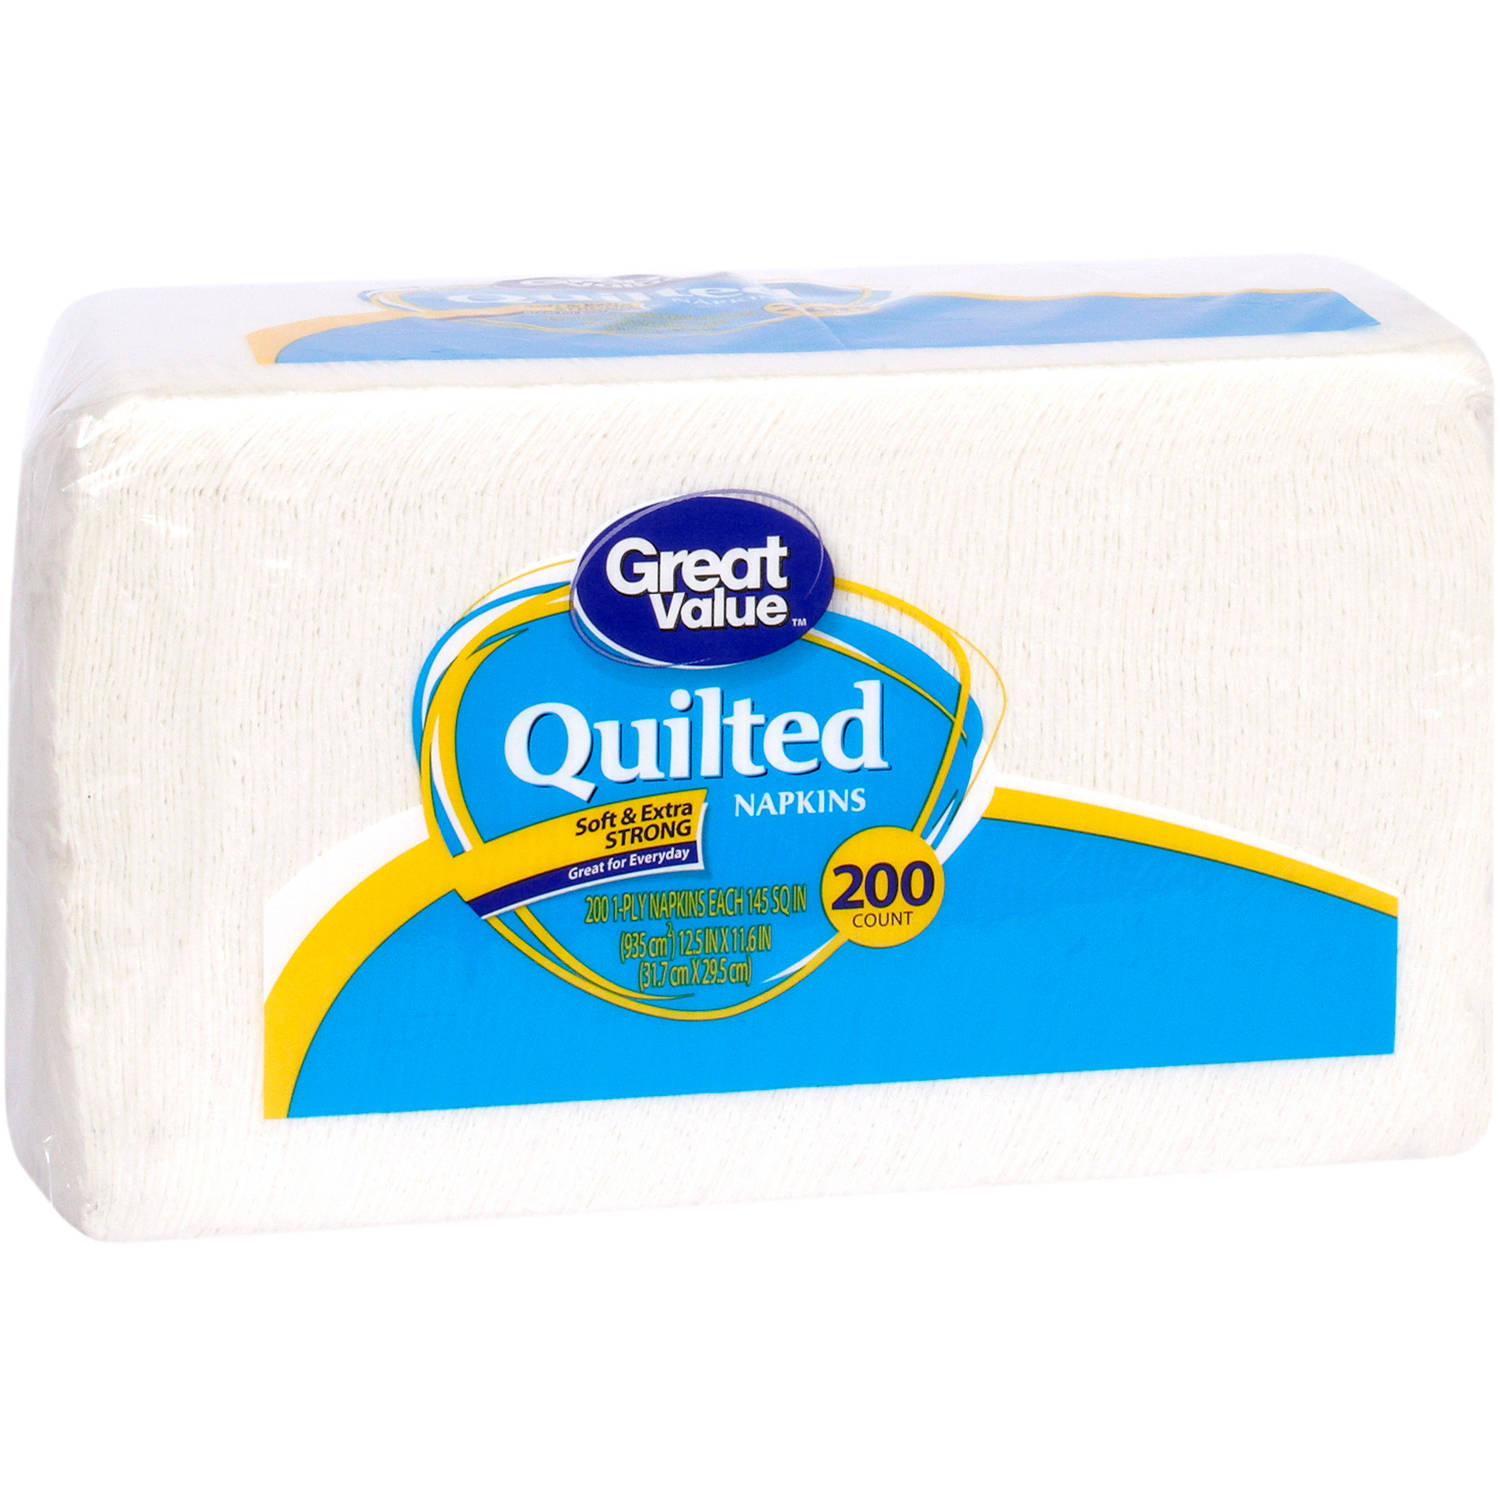 Great Value Quilted Napkins, 200ct